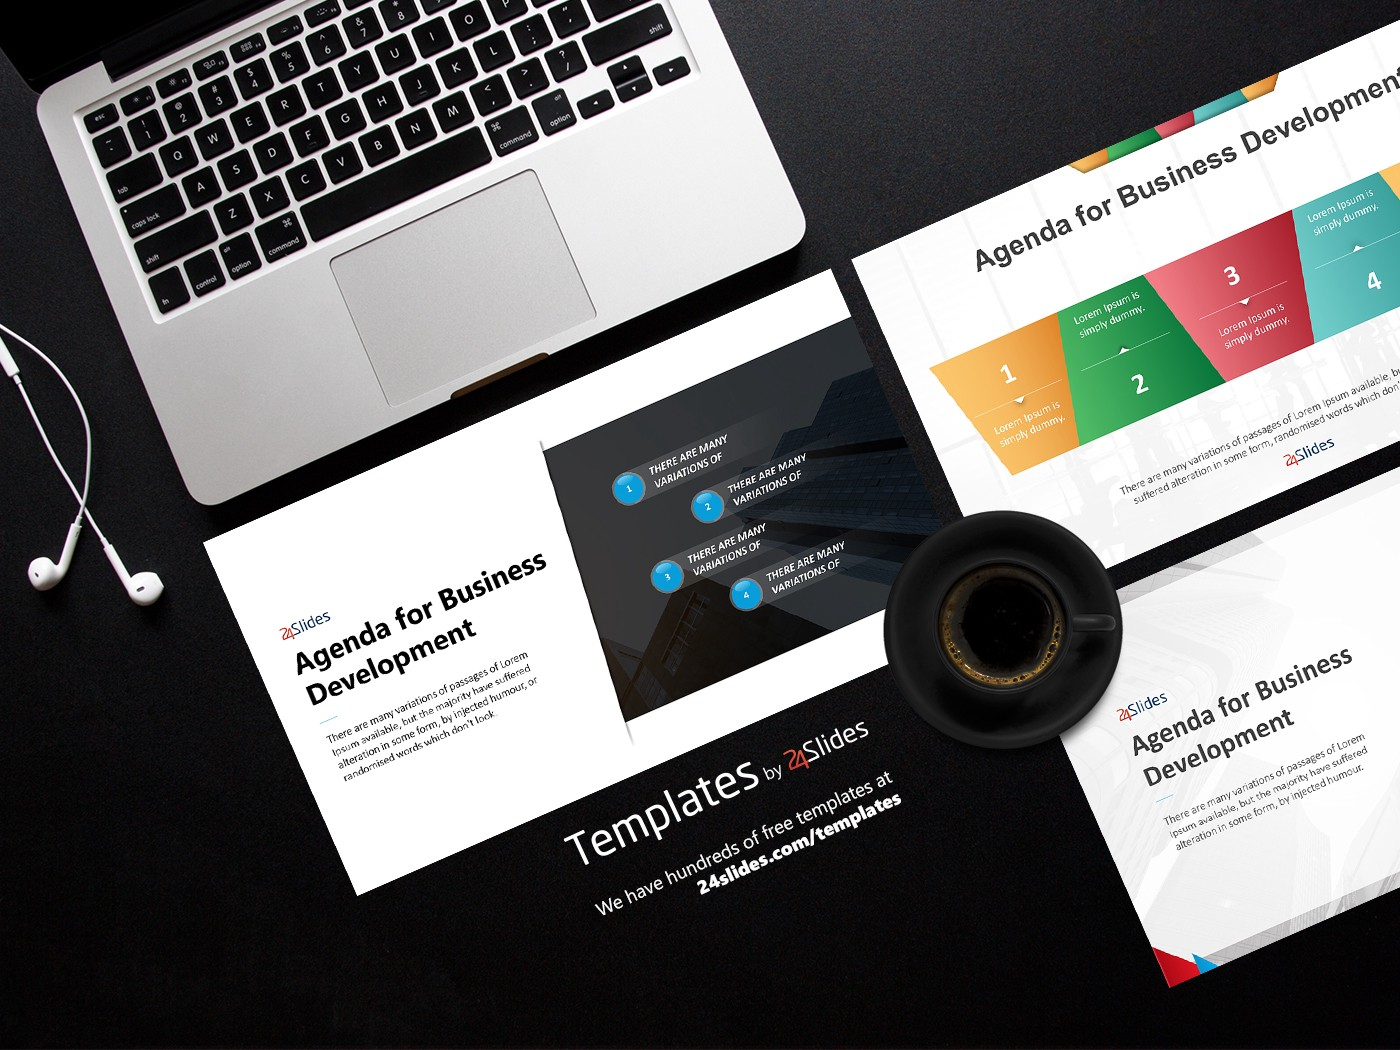 Business development agenda presentation template free download accmission Gallery